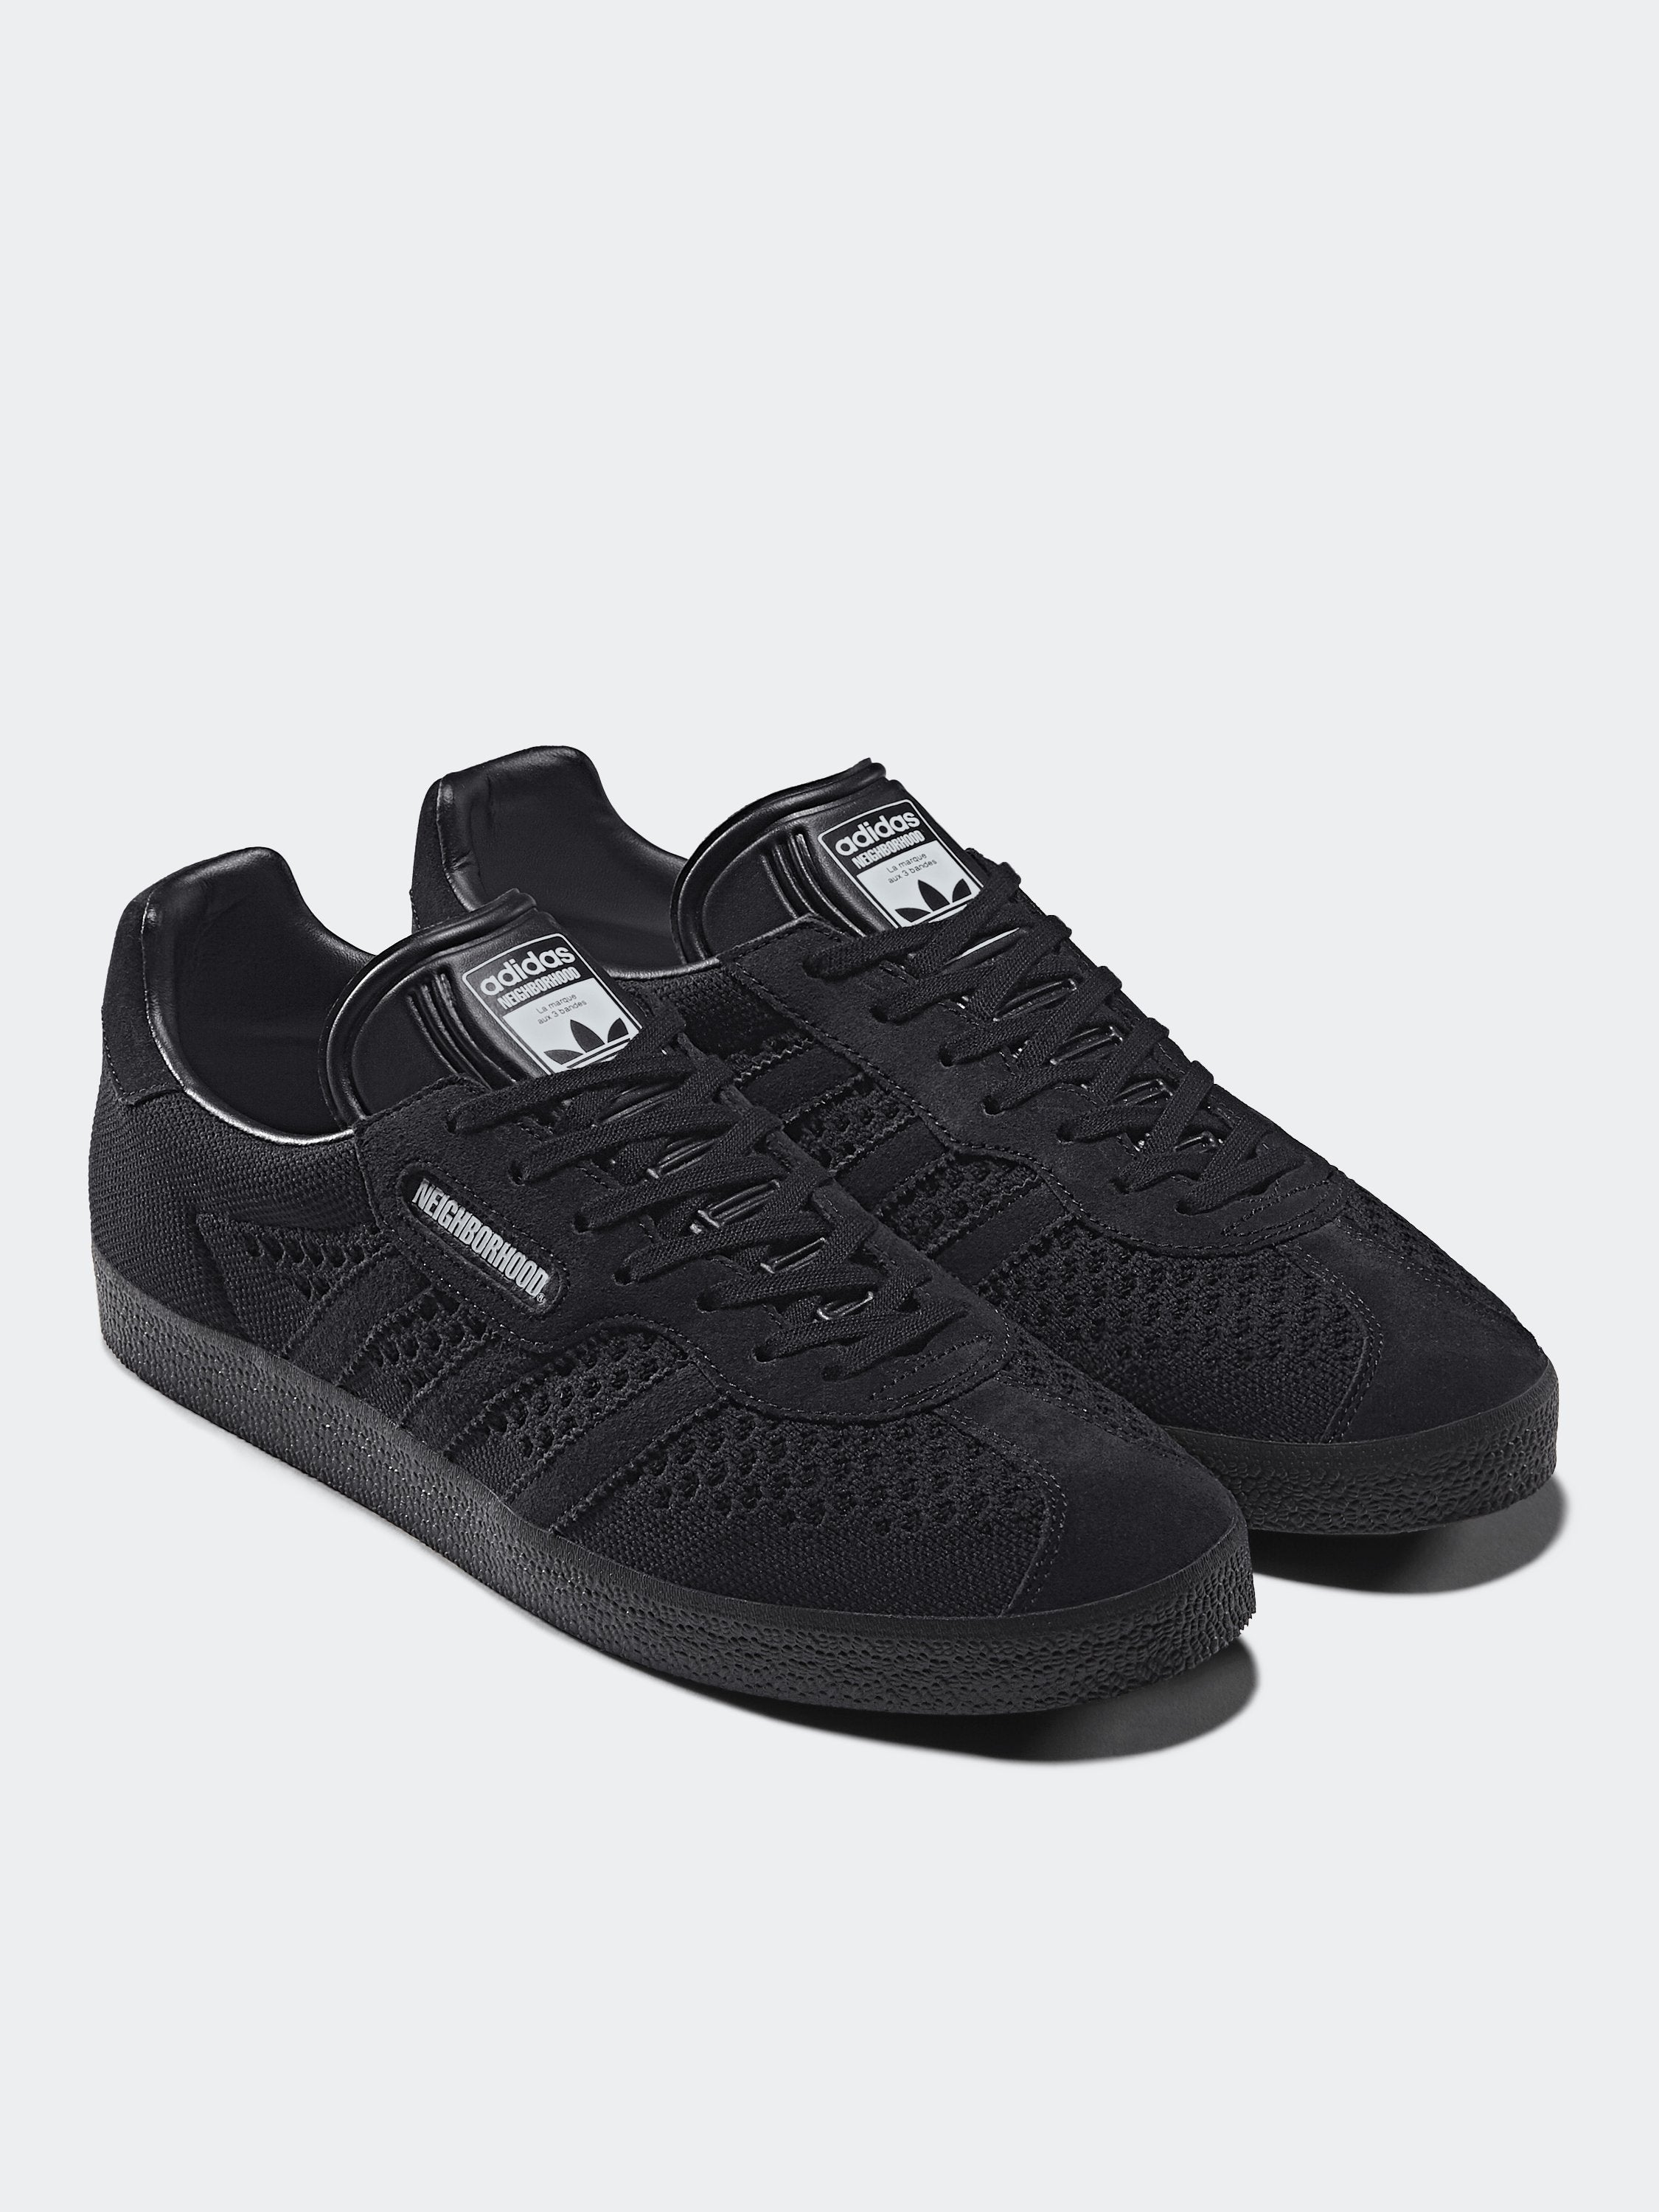 Black/Black NBHD Gazelle Super 2